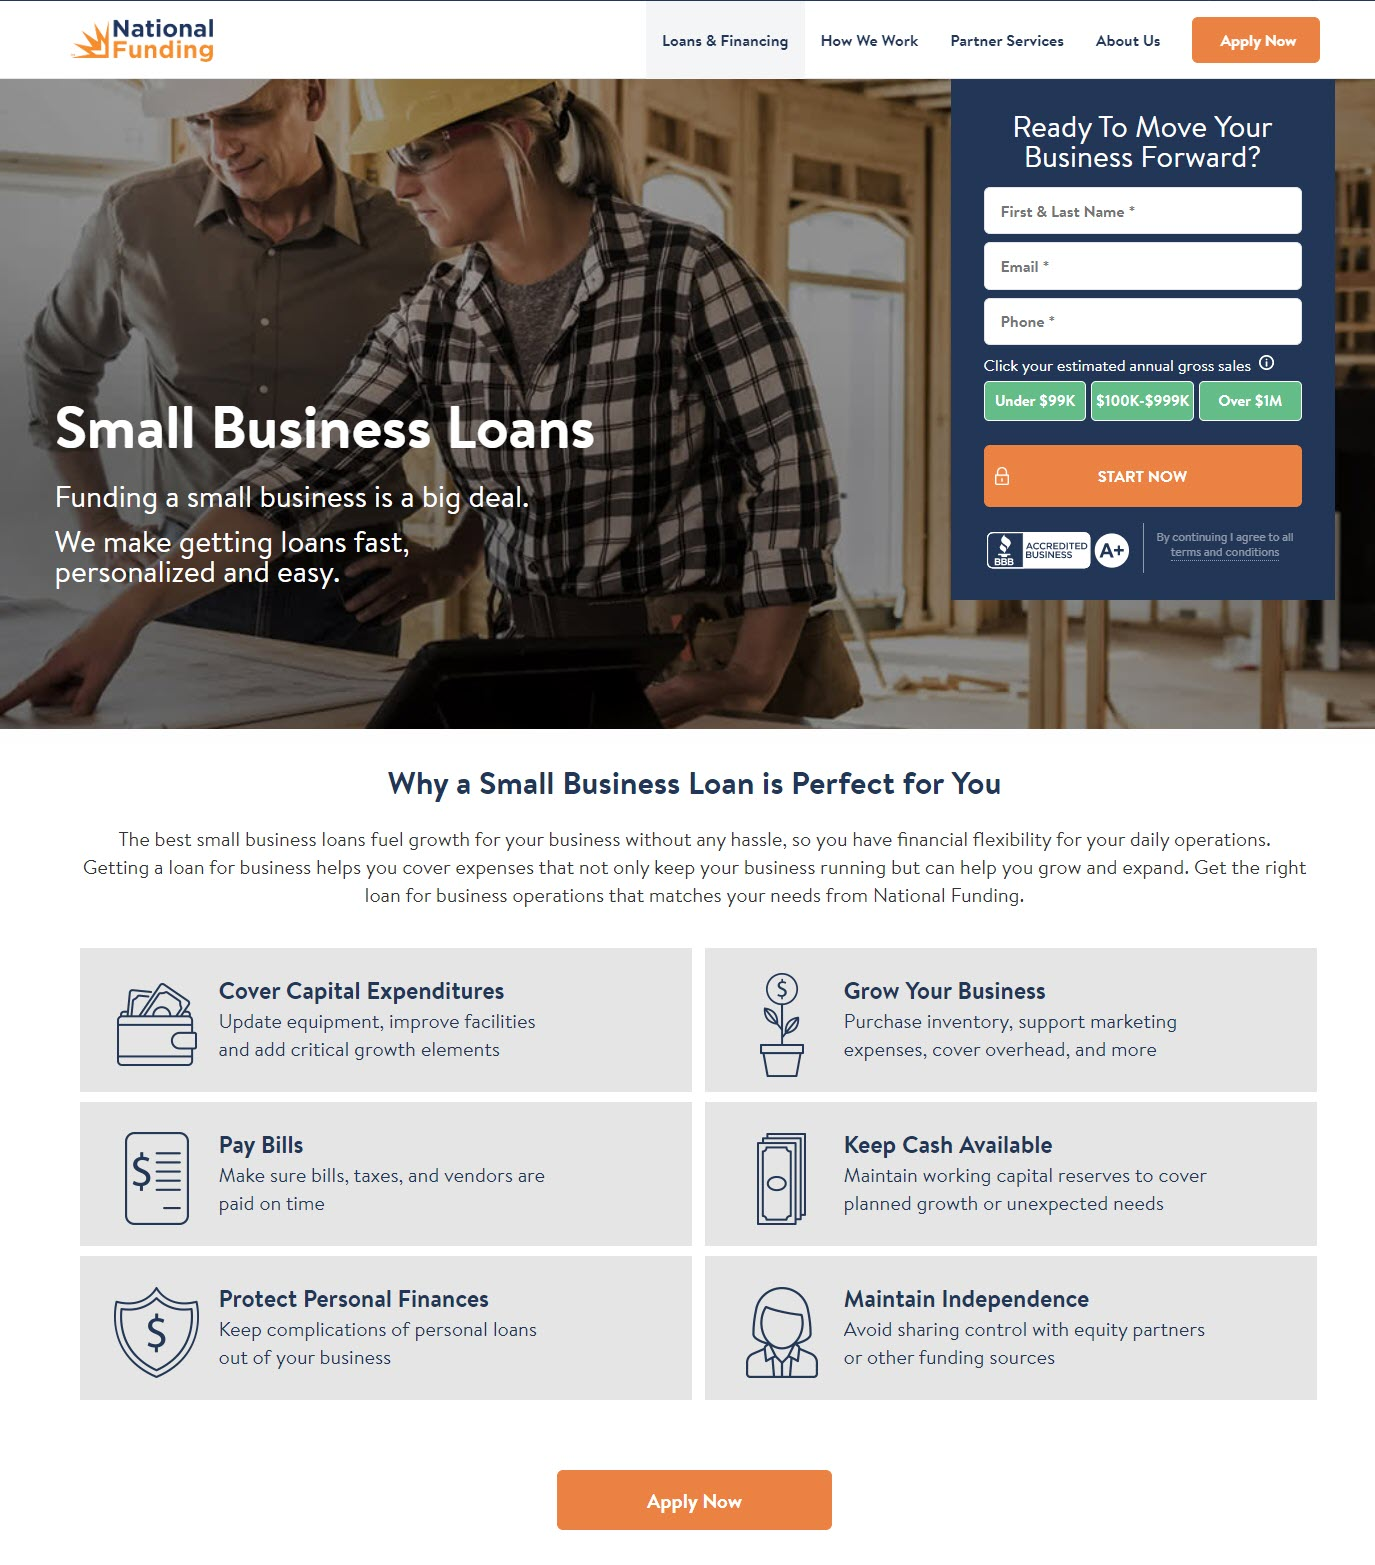 National Funding Small Business Loan Page